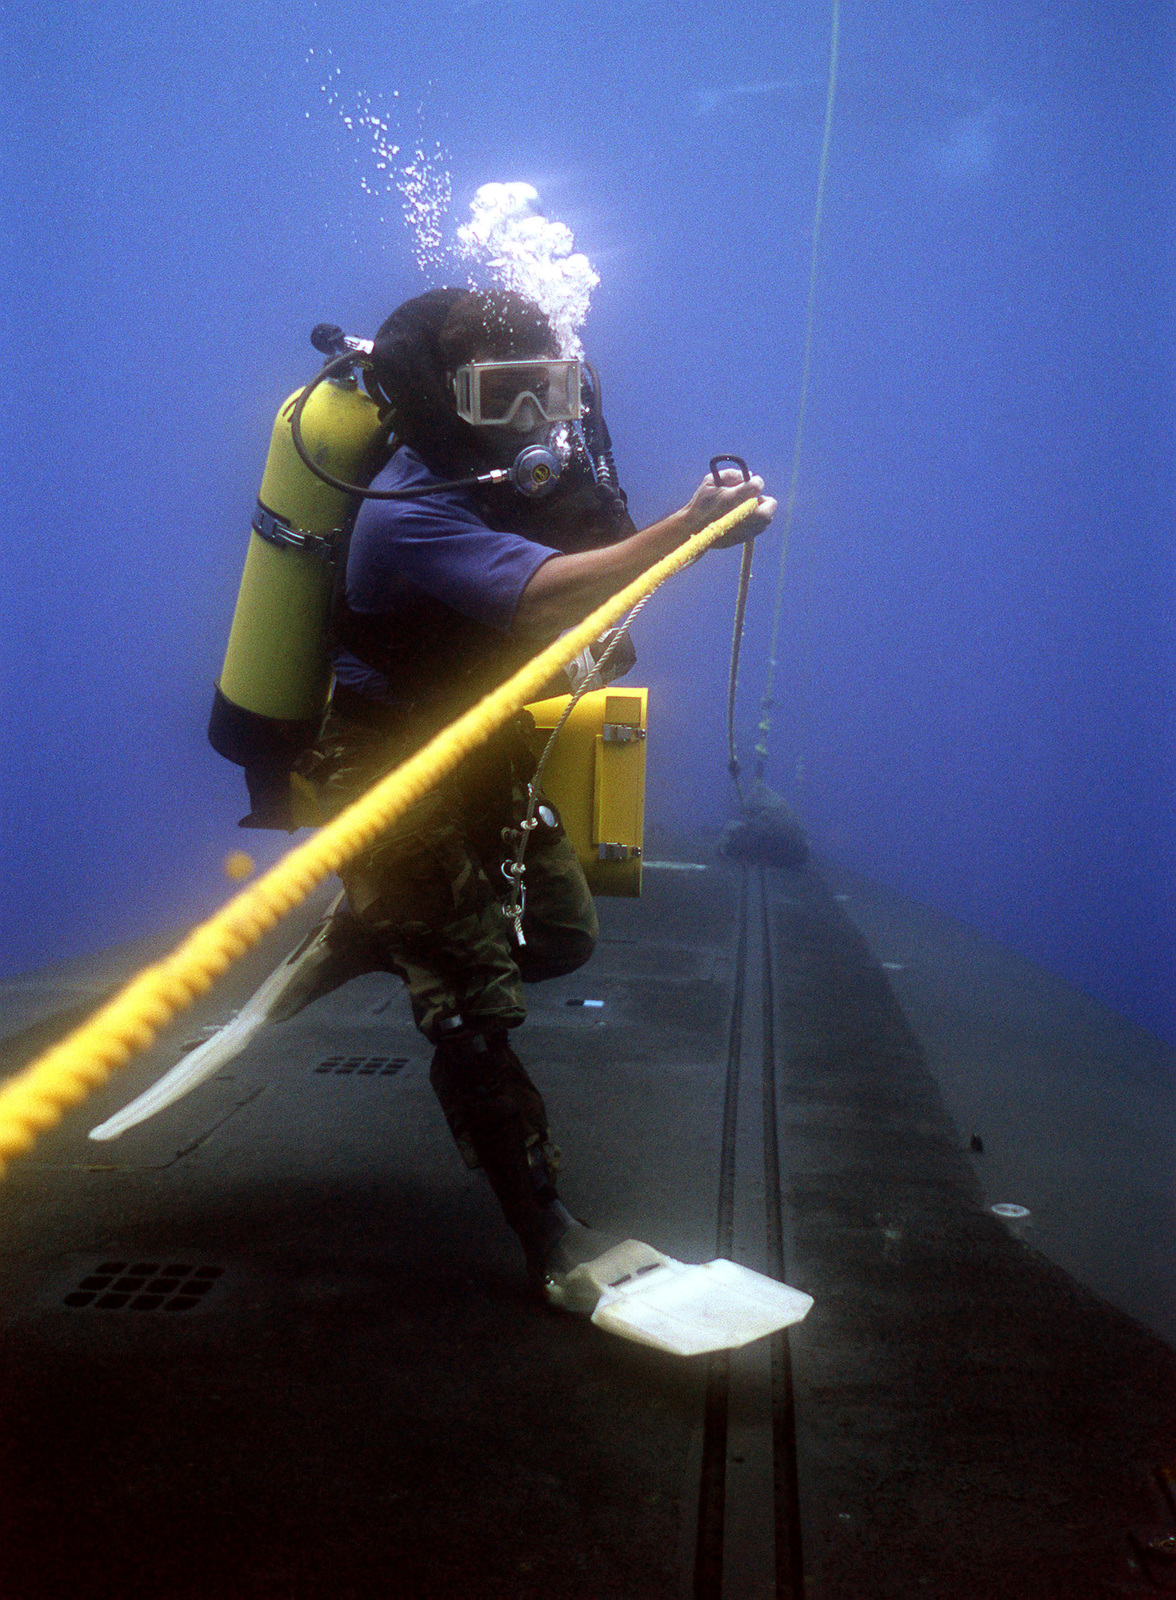 A photographer's mate/diver attaches his harness to a line rigged along the submerged hull of the nuclear-powered strategic missile submarine USS WOODROW WILSON (SSBN 624). The cameraman is preparing to videotape members of a Navy sea-air-land SEAL team as they practice entering and exiting the submarine during lock-out procedures off the coast of Puerto Rico.